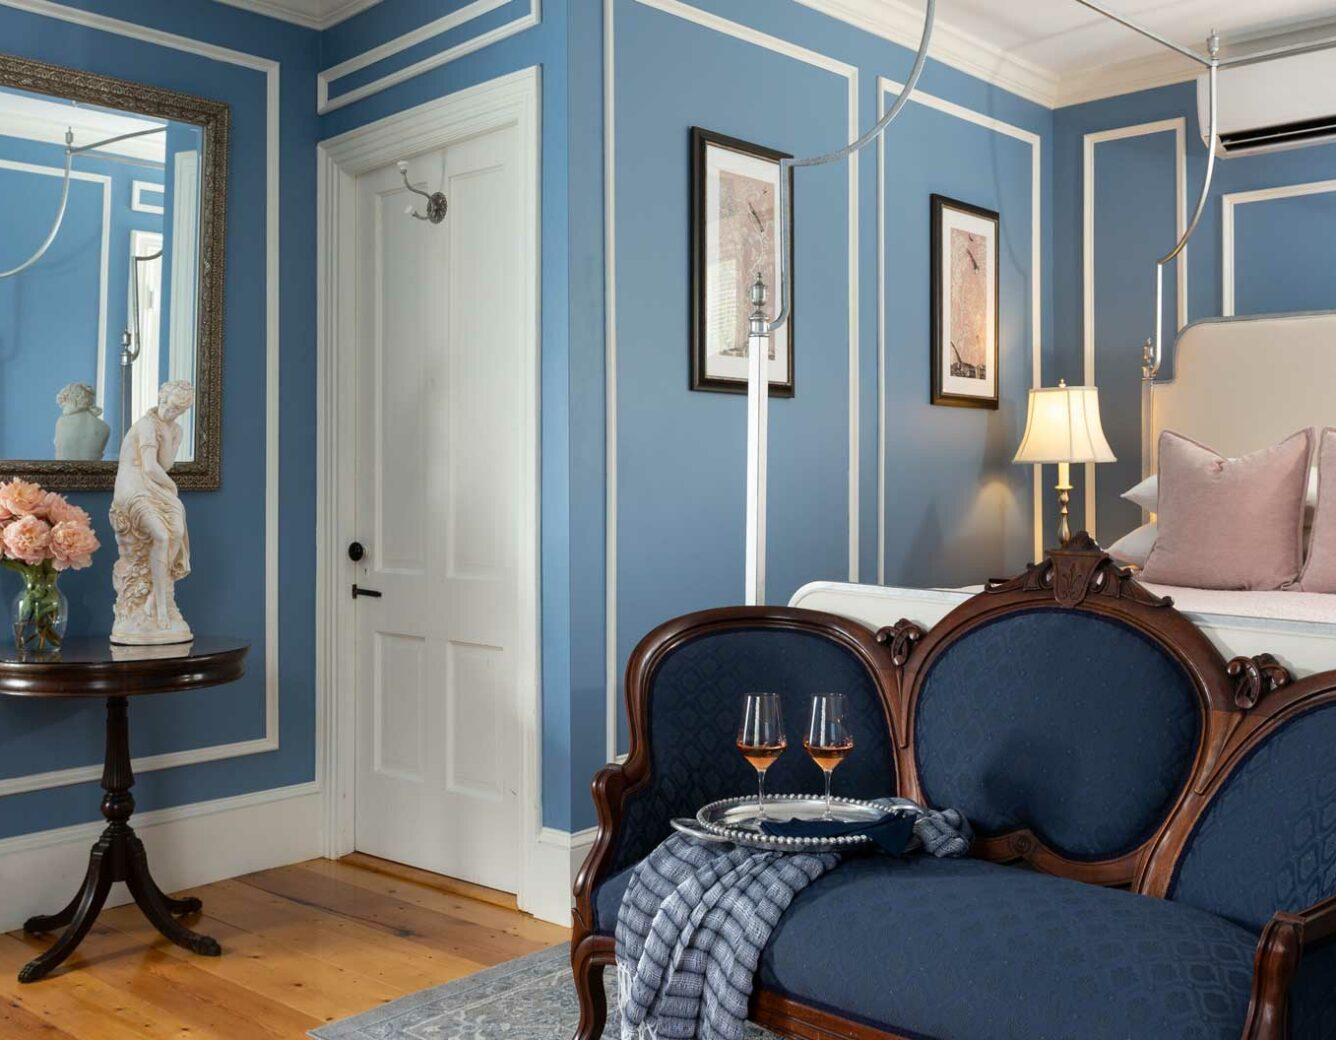 Queen bed in a room with a chair and table